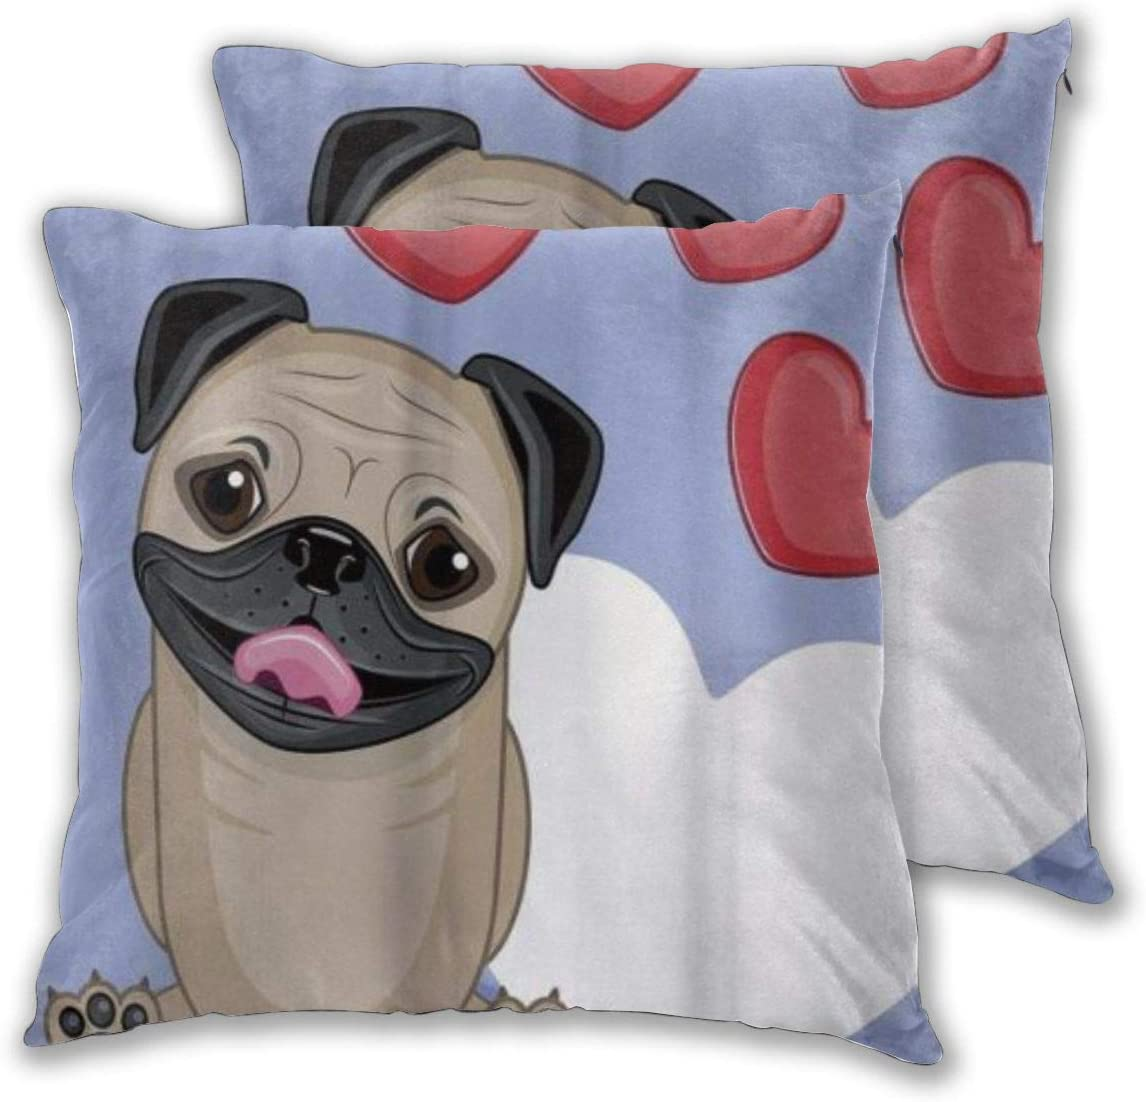 Kasabull Throw Pillow Covers Set Of 2 Pug Happy Cute Dog Licking Its Lips With Three Red And One Big White Heart Love Pillowcase Decorative Cushion Cover Without Pillow 30cm X 30cm